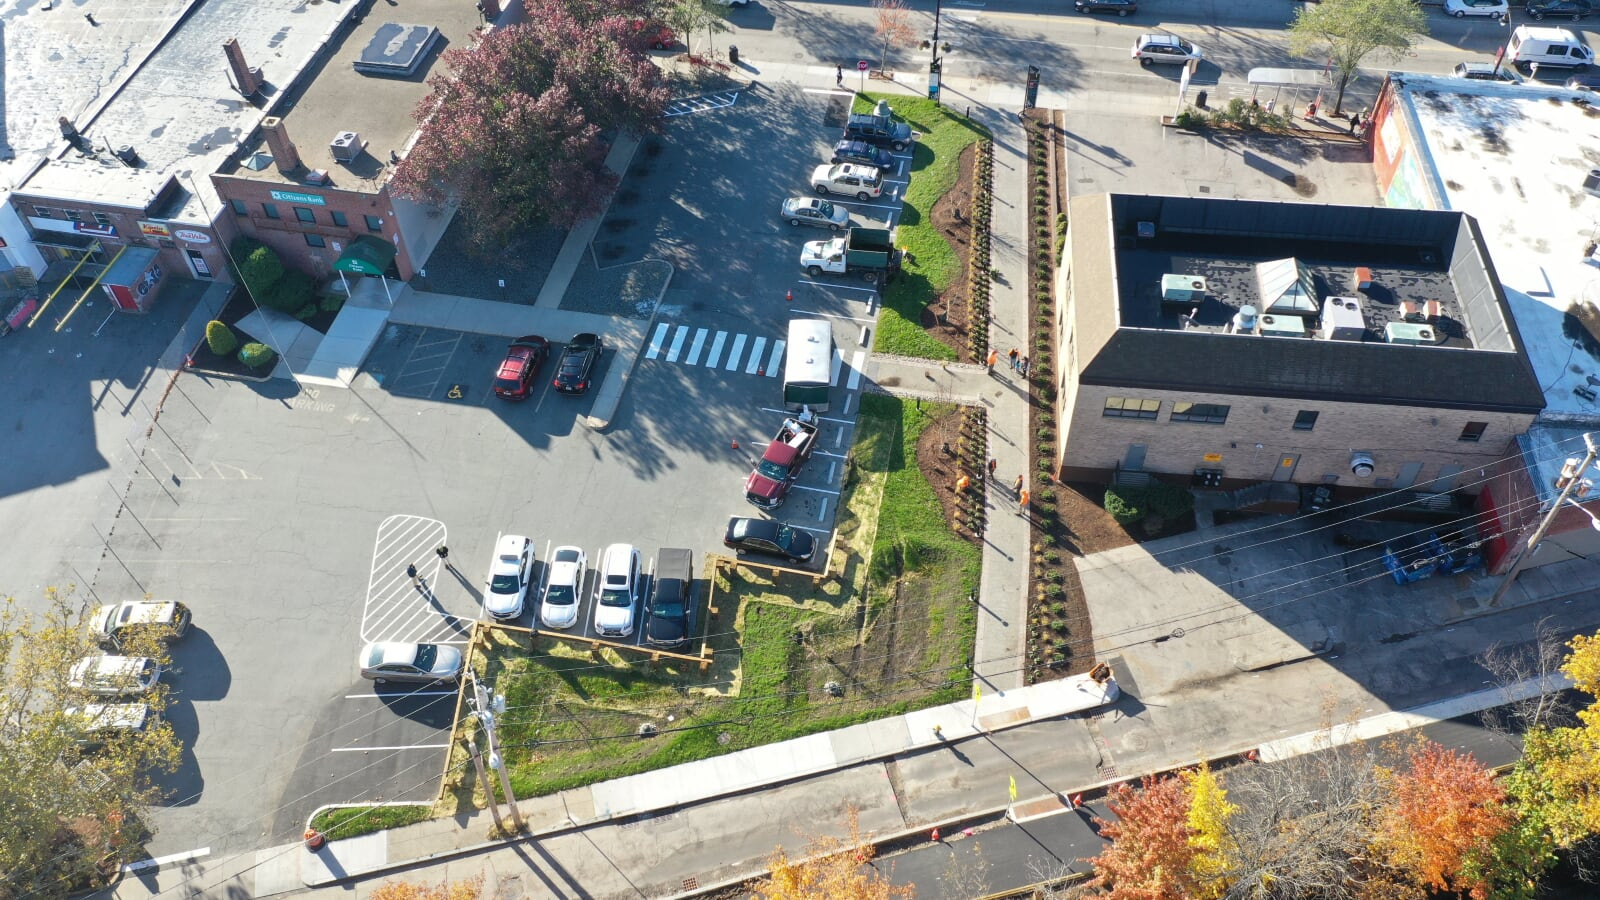 Drone image of the Citizens Bank parking lot with the new Green Infrastructure